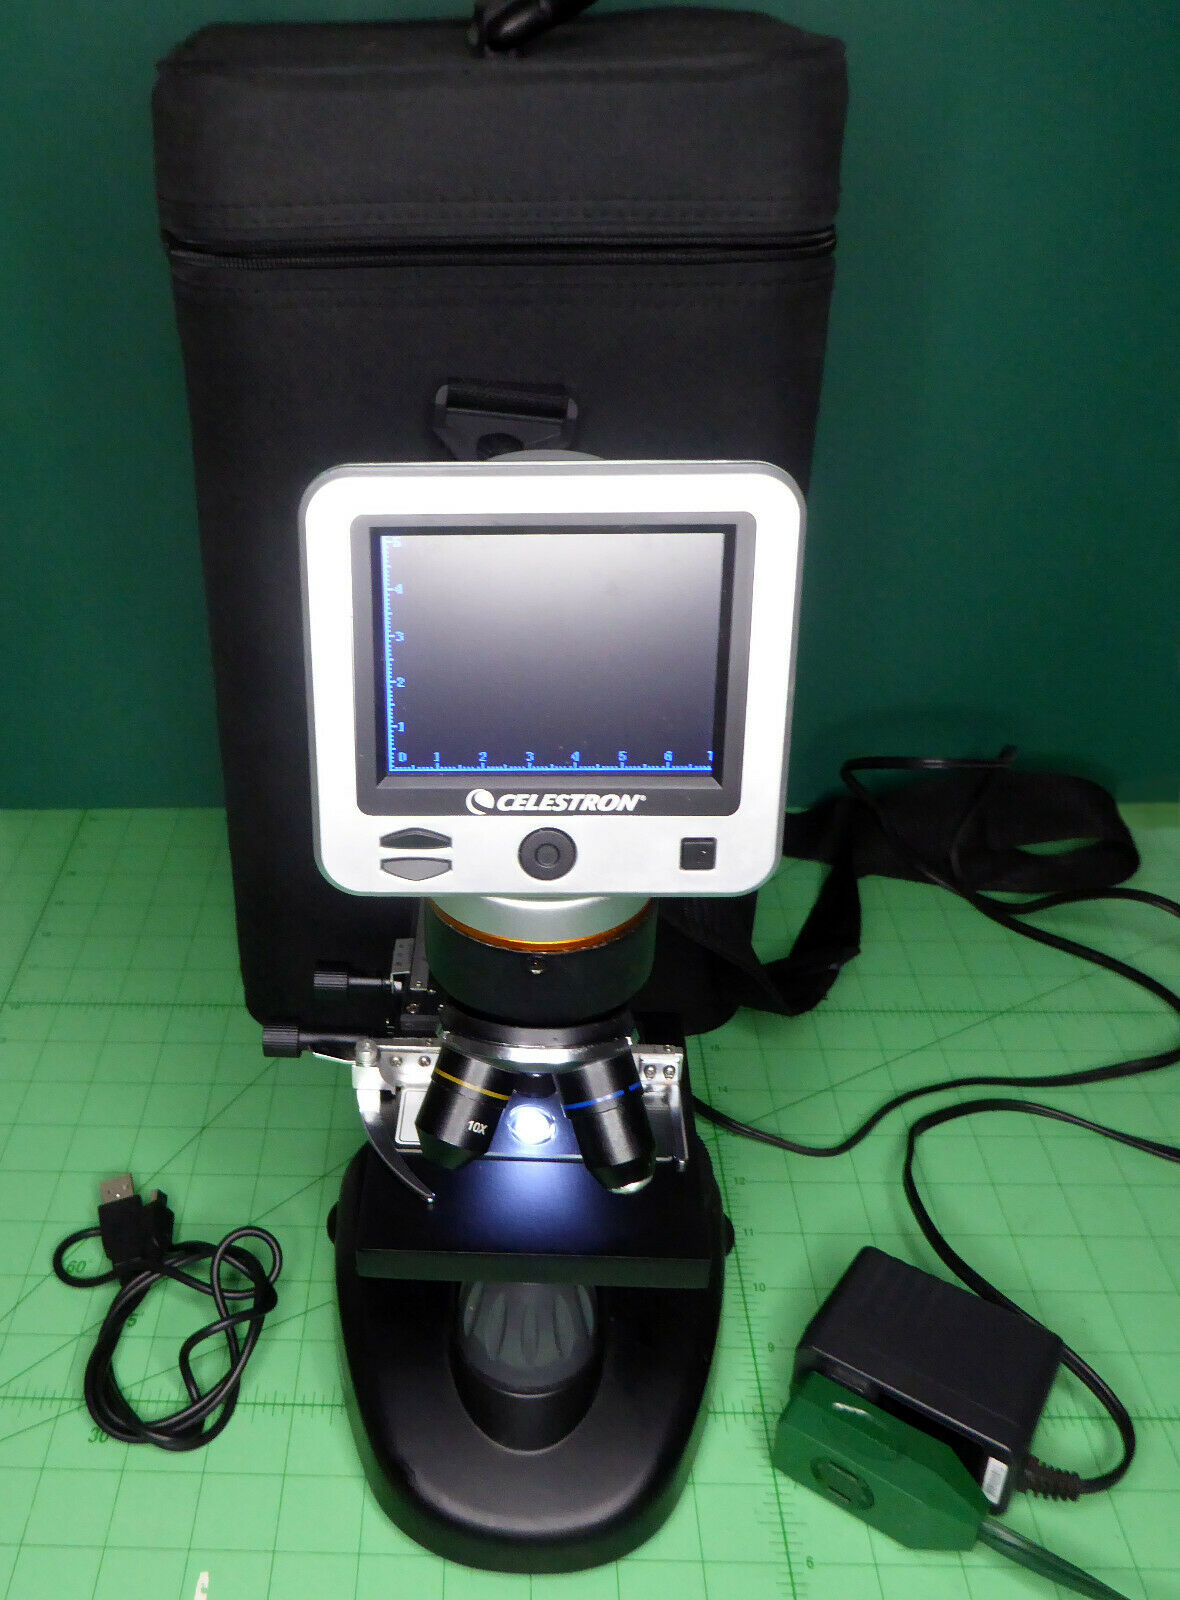 Celestron. LCD Digital Microscope II, Model  44341 with original case and slides